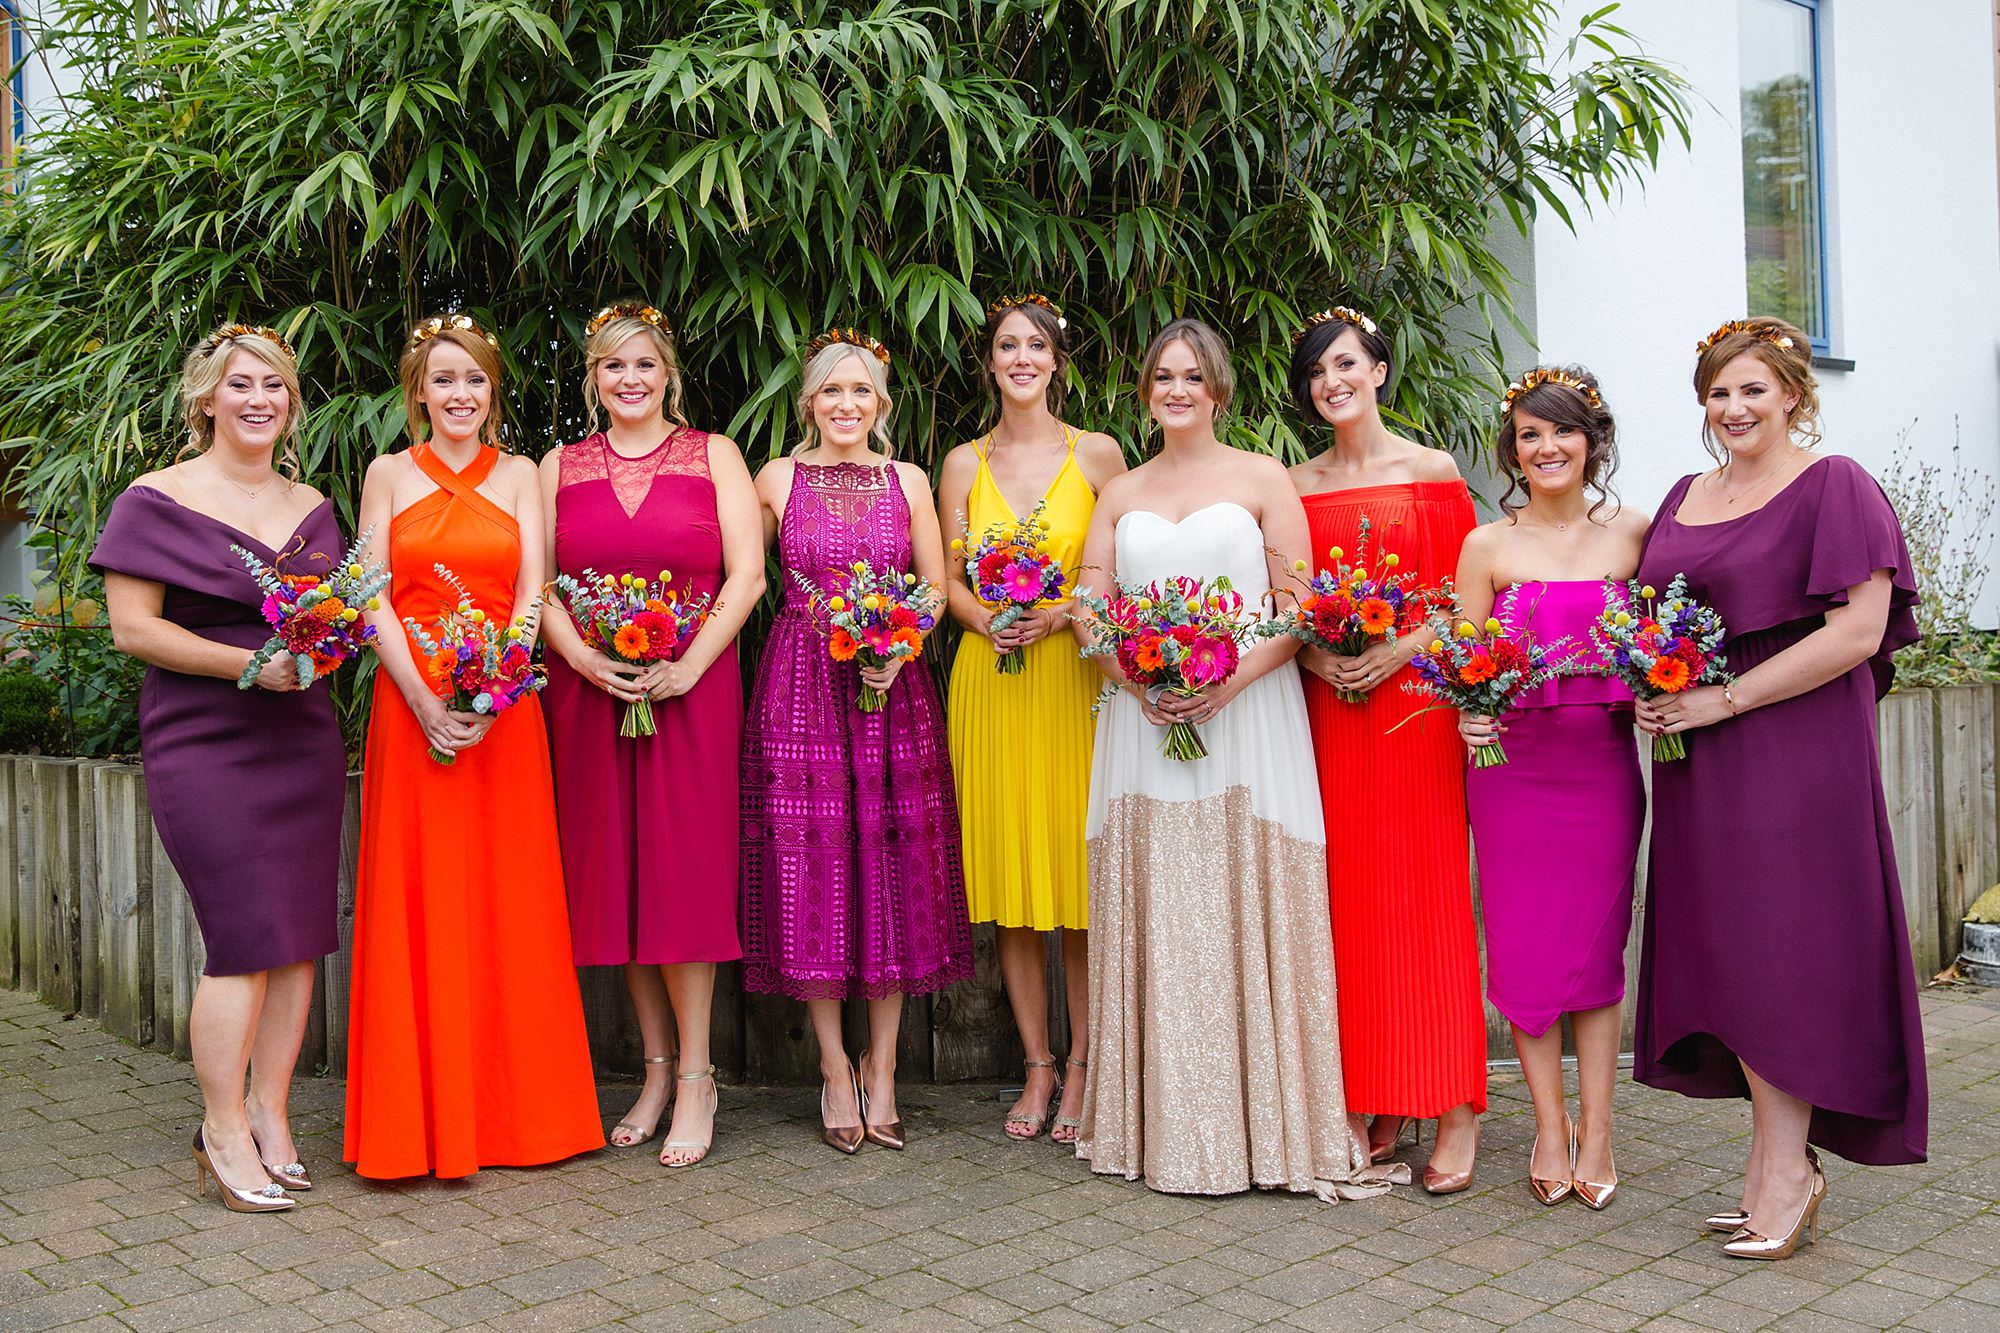 Fun London Wedding portrait of bride and bridesmaids together in colourful dresses